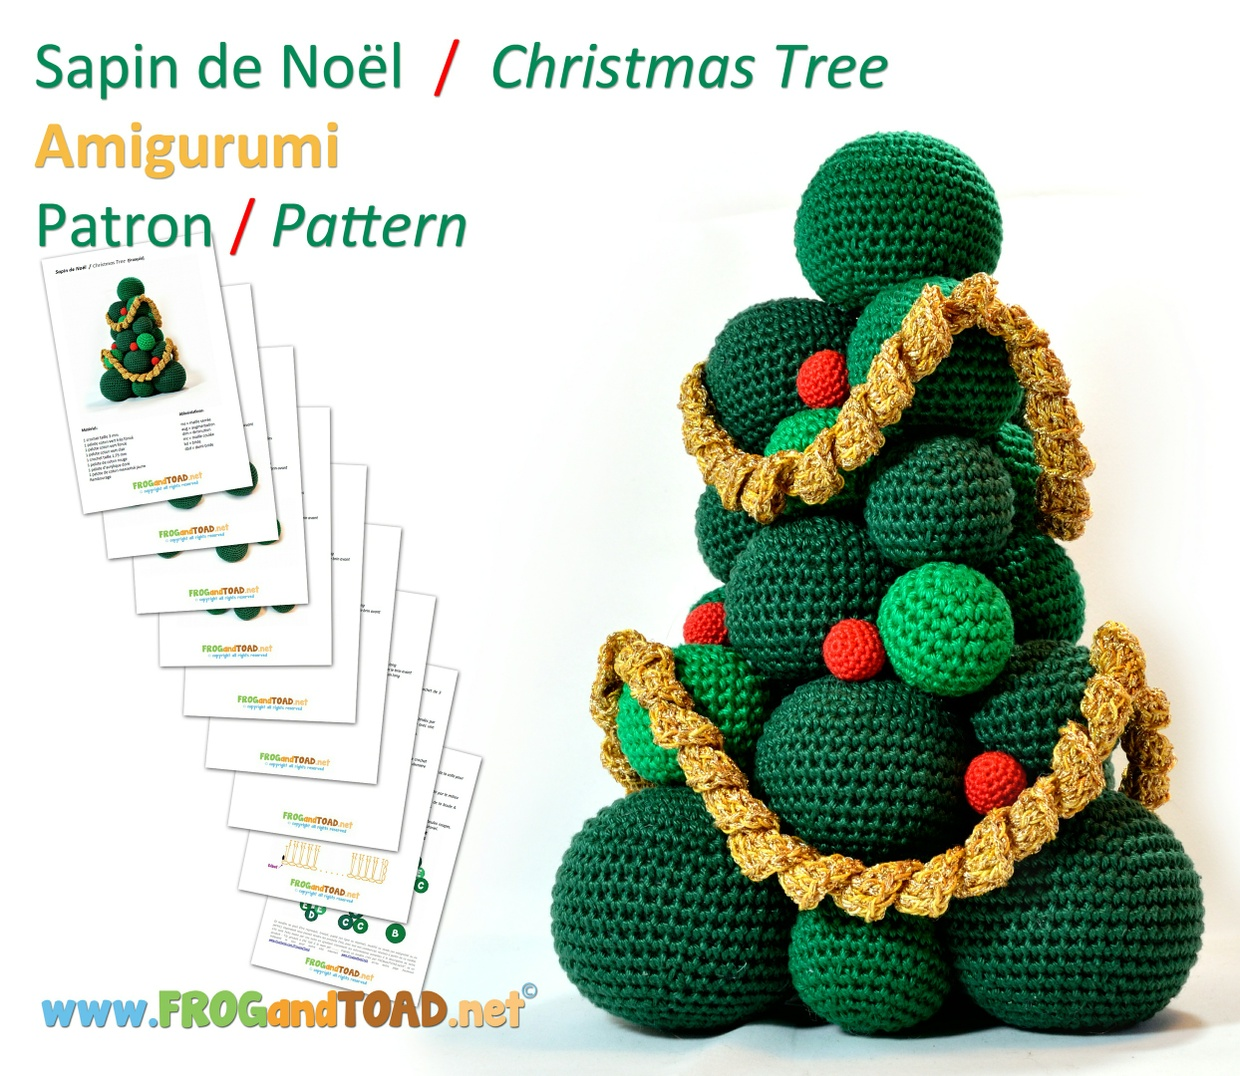 Sapin de Noel - Christmas Tree - Weihnachtsbaum - Albero di Natale - FROGandTOAD Créations ©